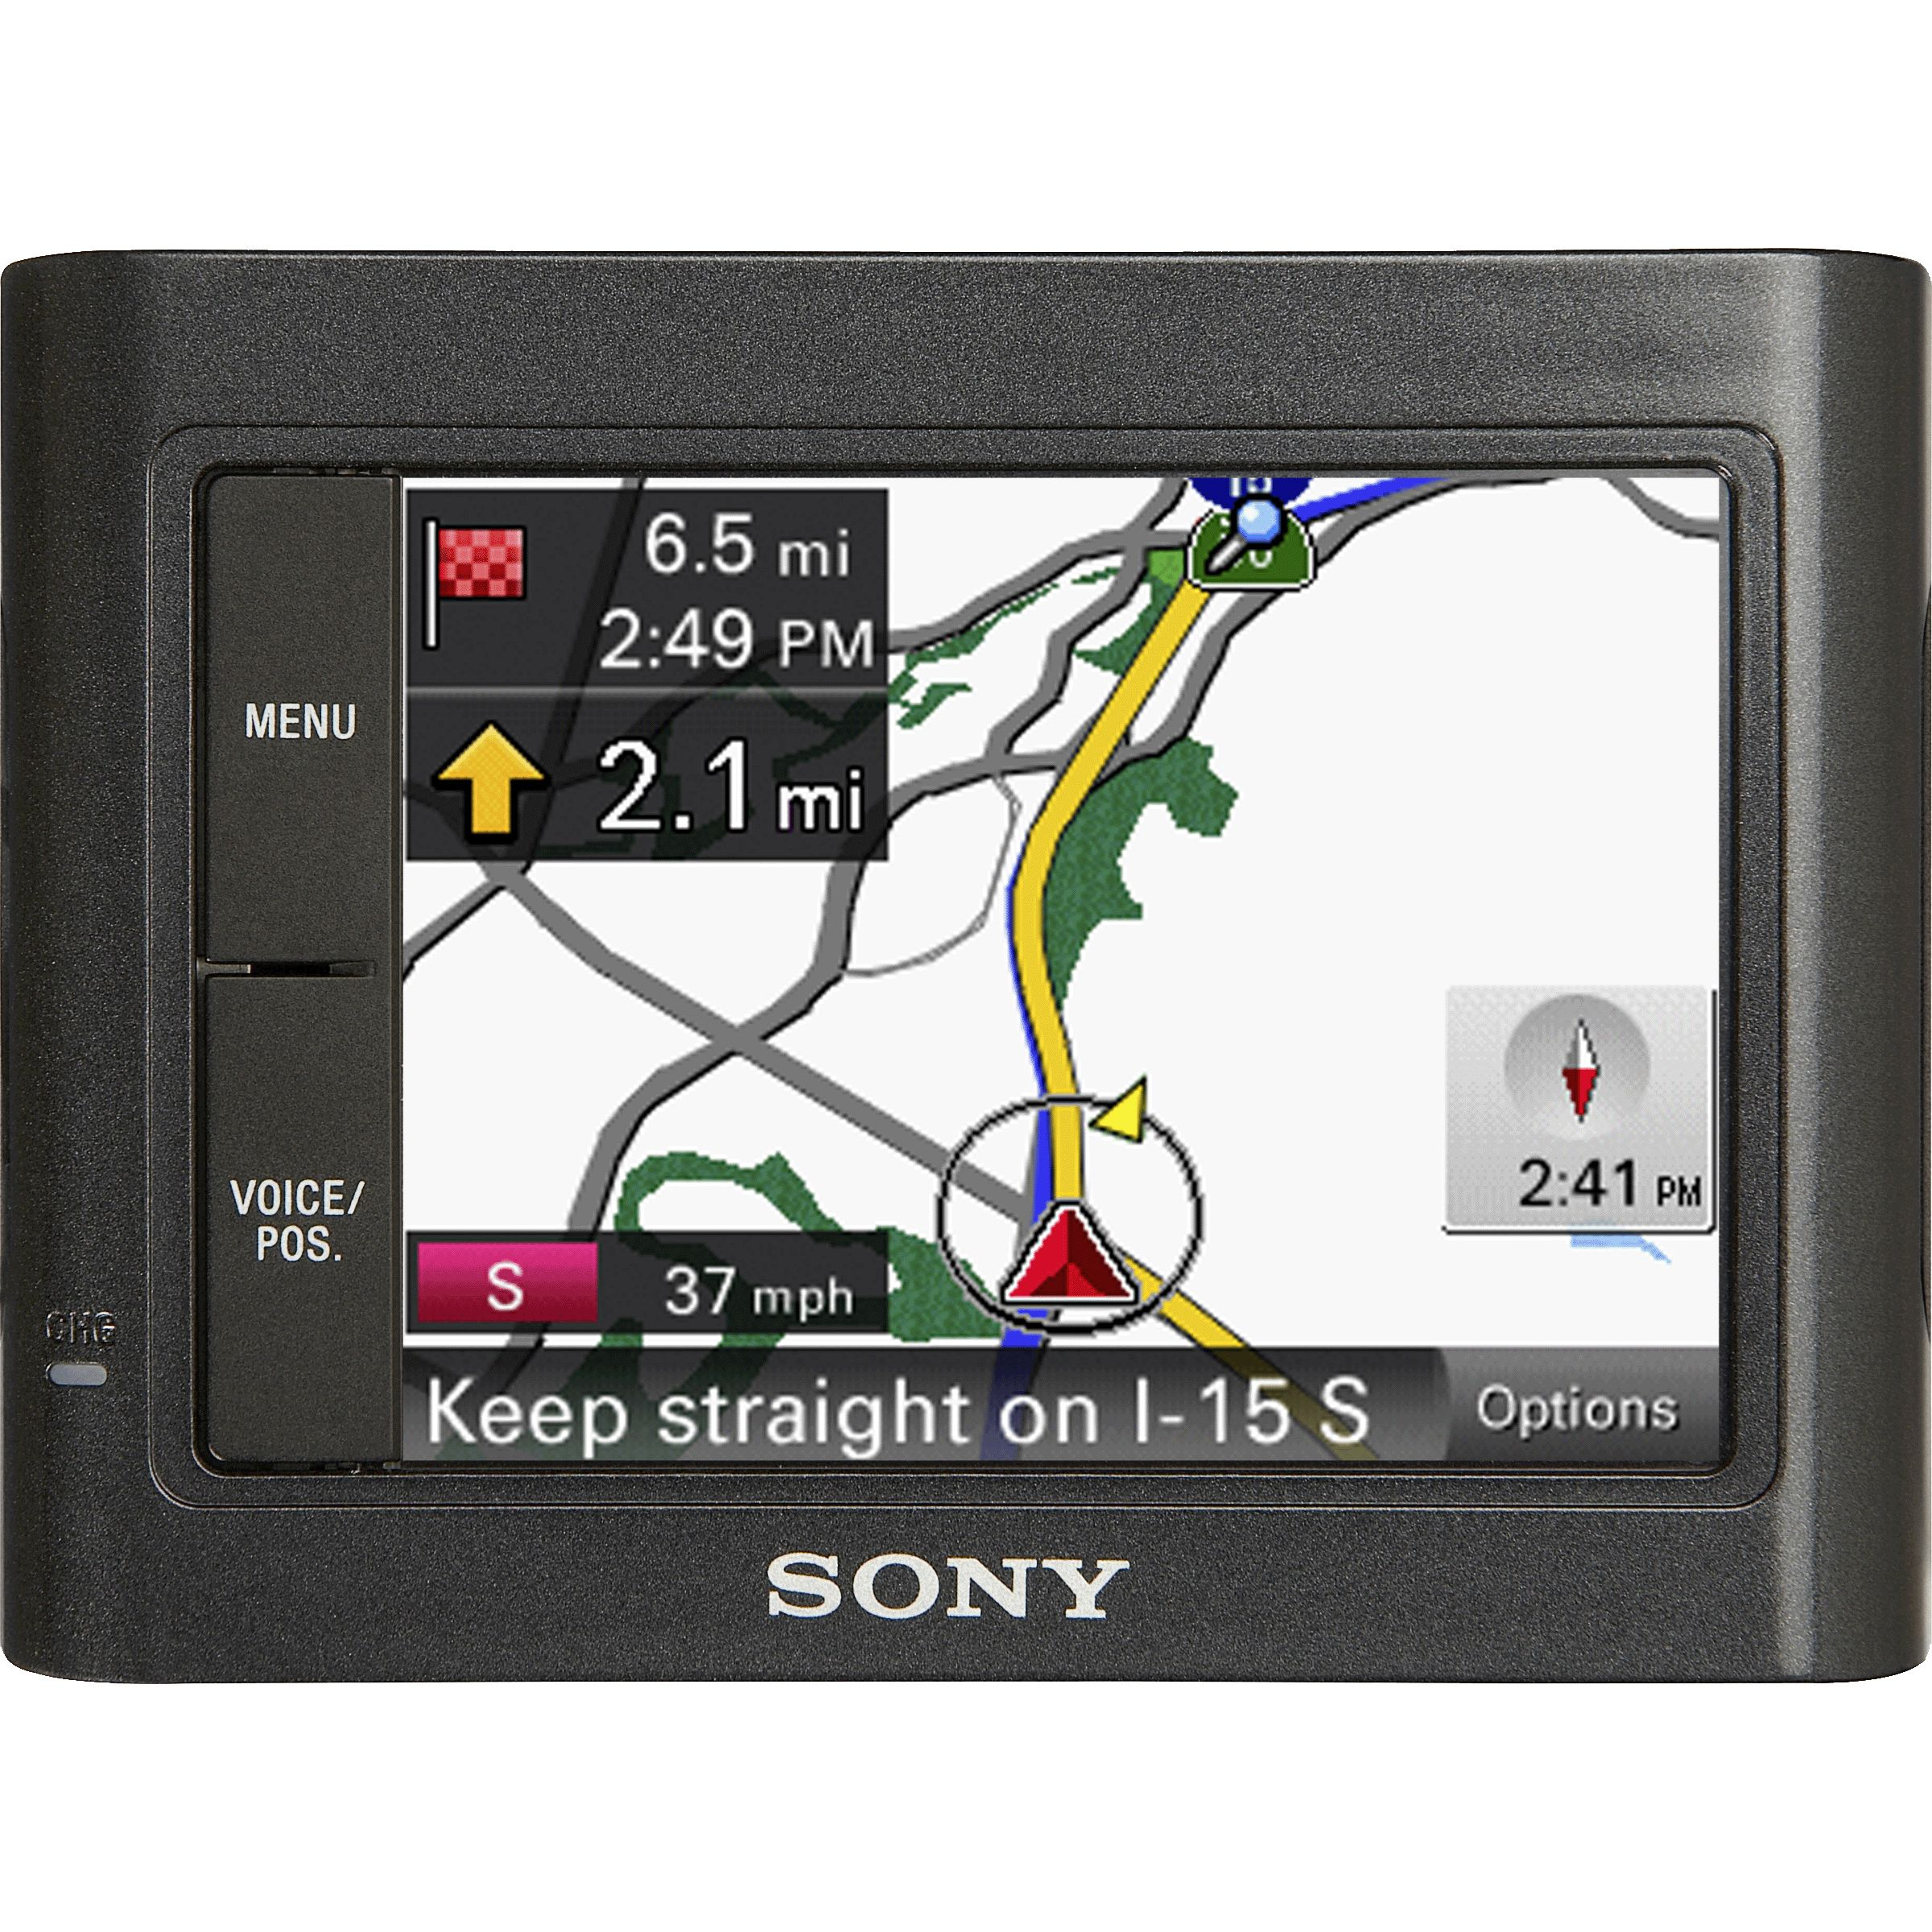 Sony  Nav-U™, 3.5 in. Touchscreen